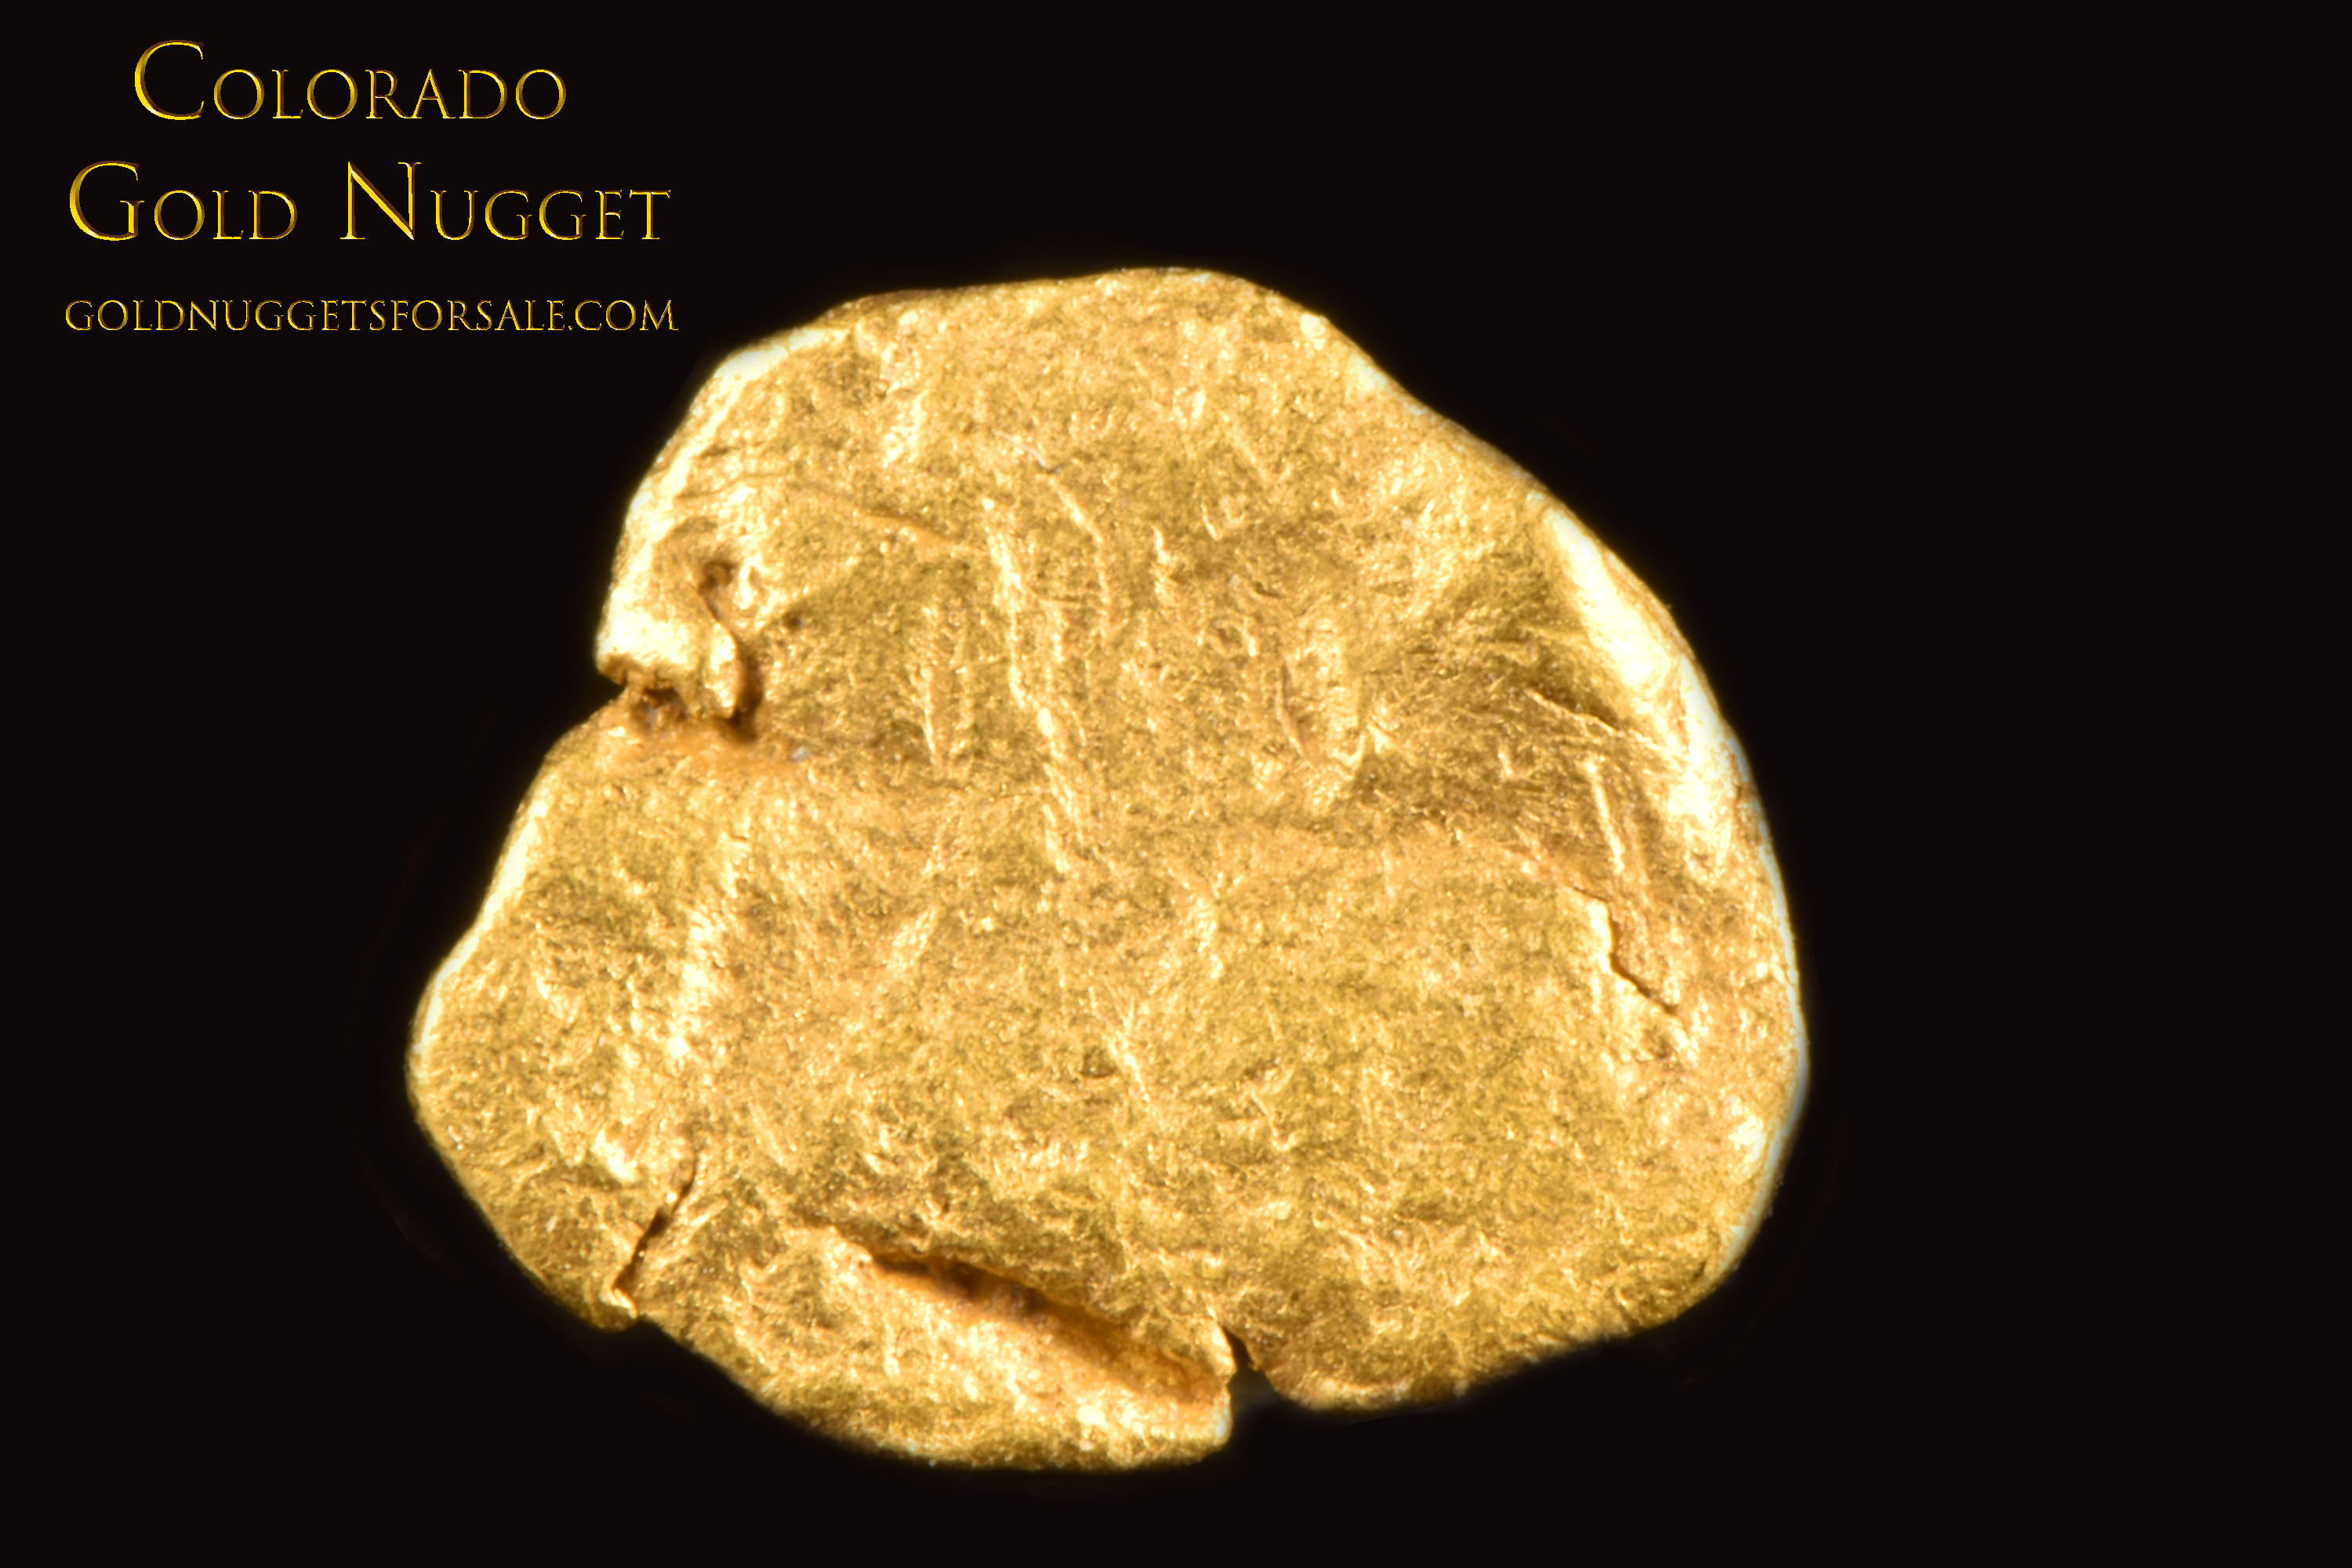 Flat and Rounded Native Colorado Gold Nugget